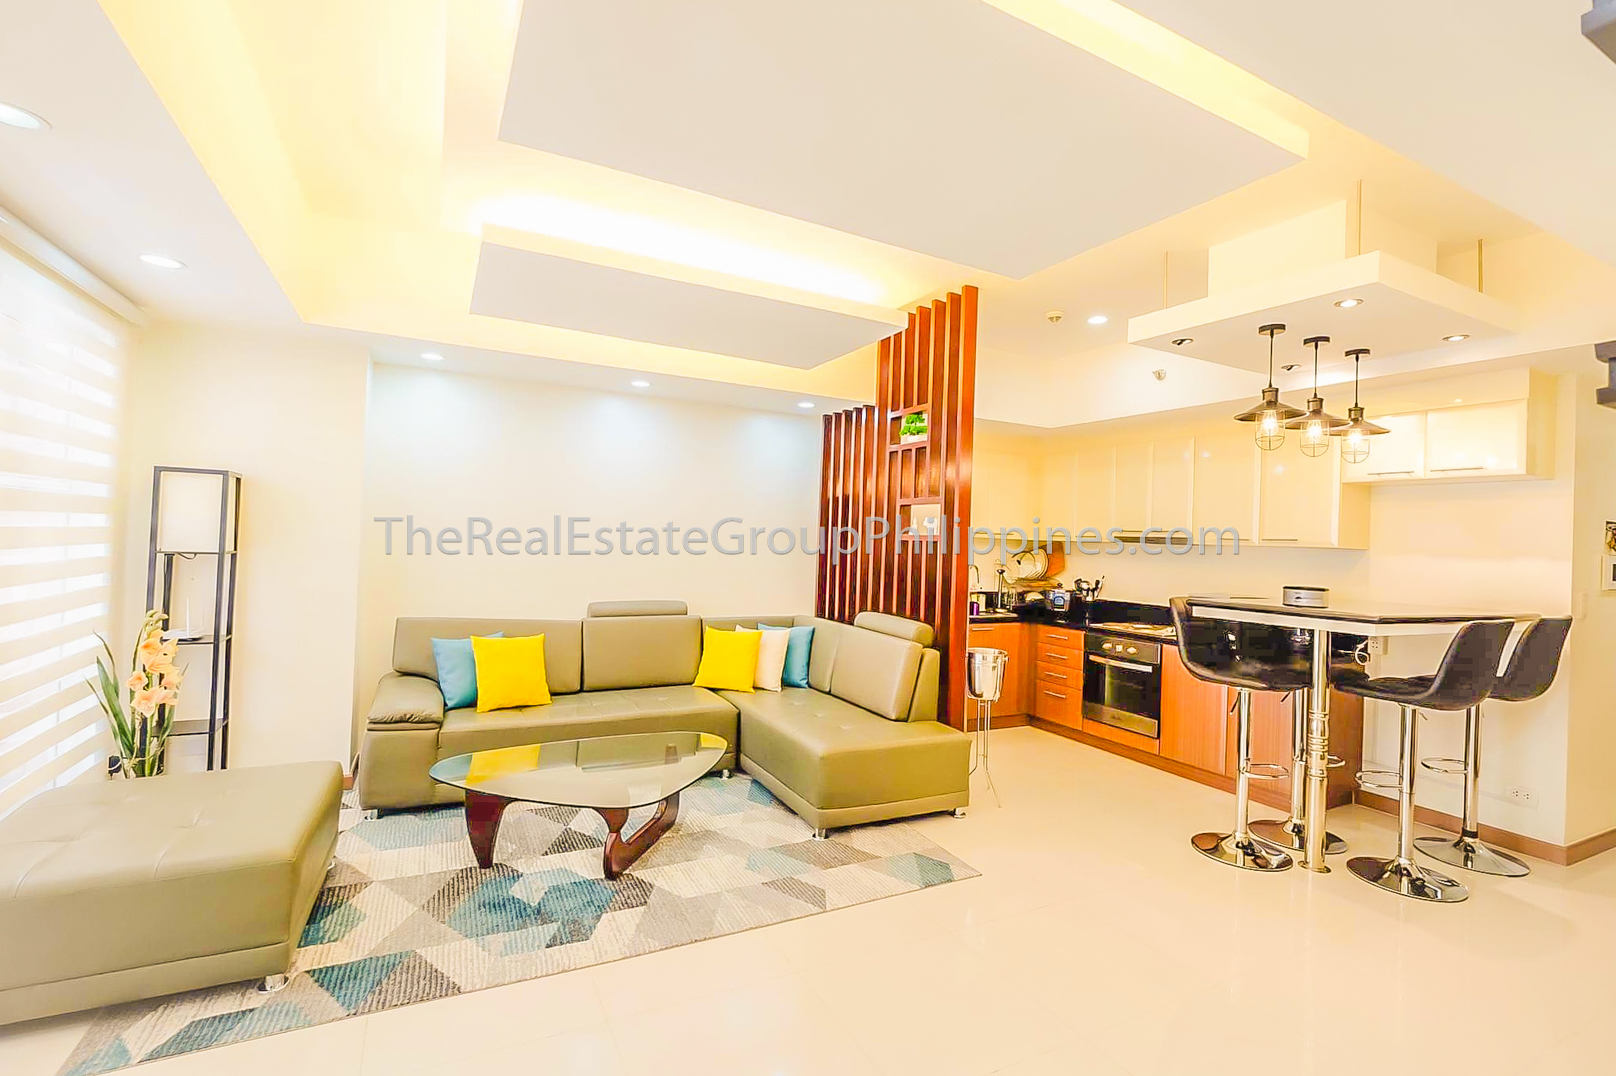 2BR Condo For Sale Venice Residences McKinley Hill Taguig (6 of 10)